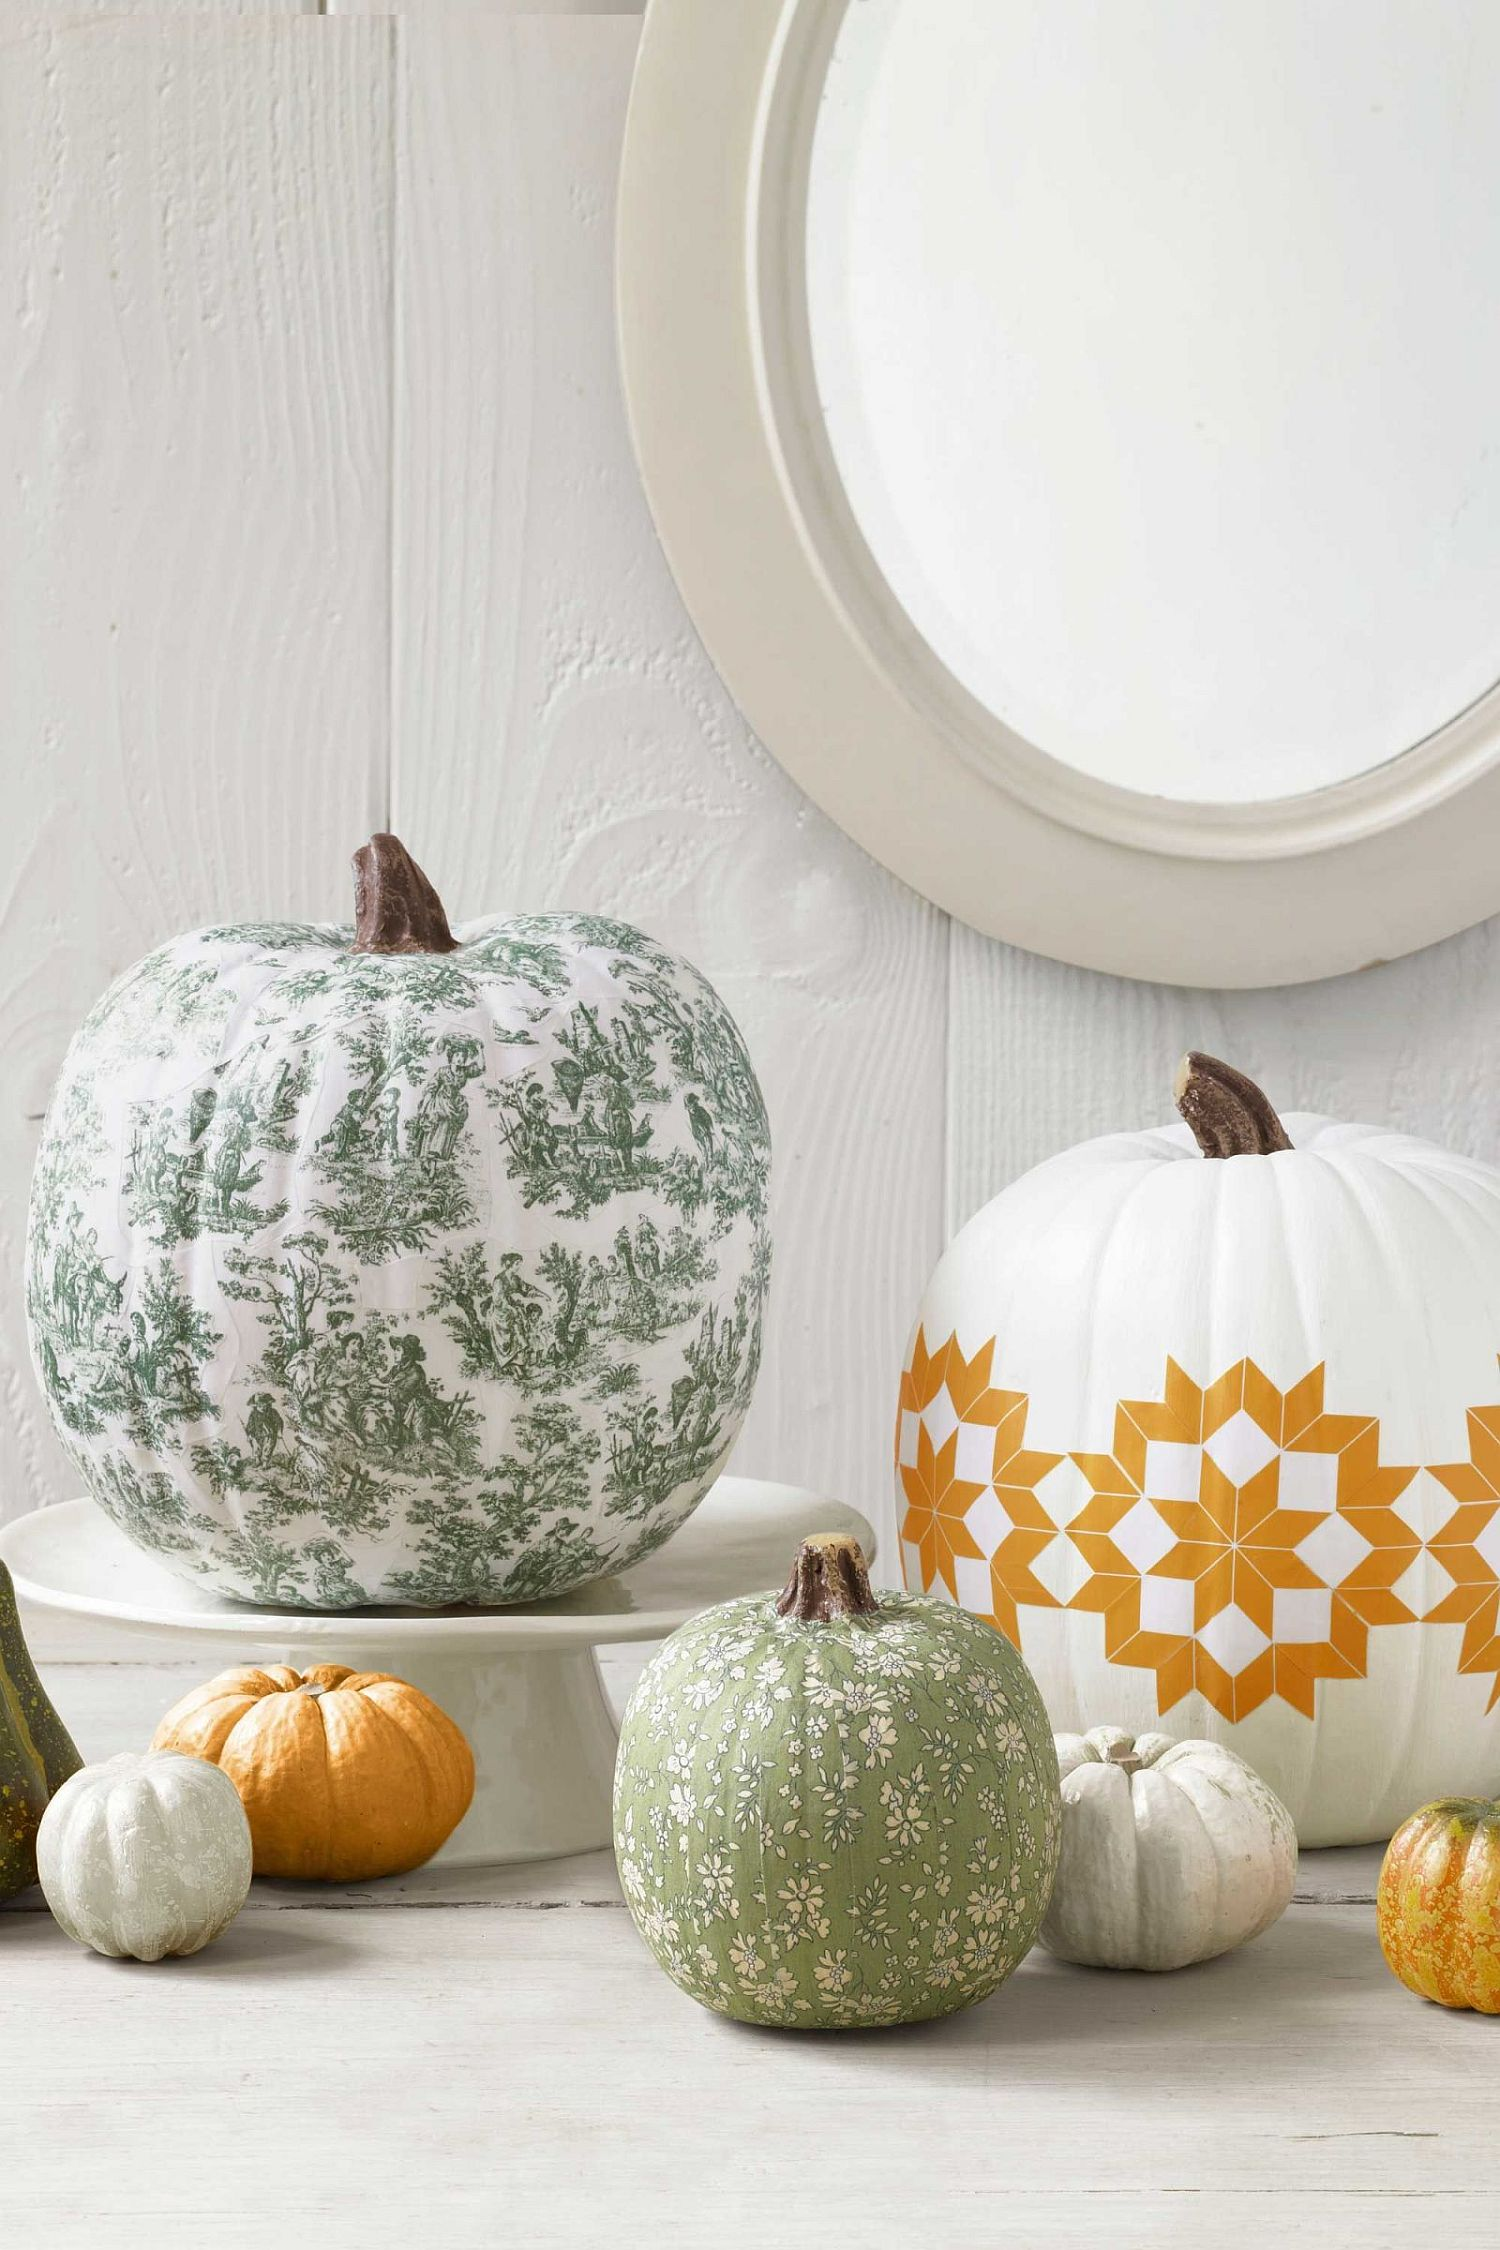 Paint and pattern can turn your pumpkin into an artistic masterpiece